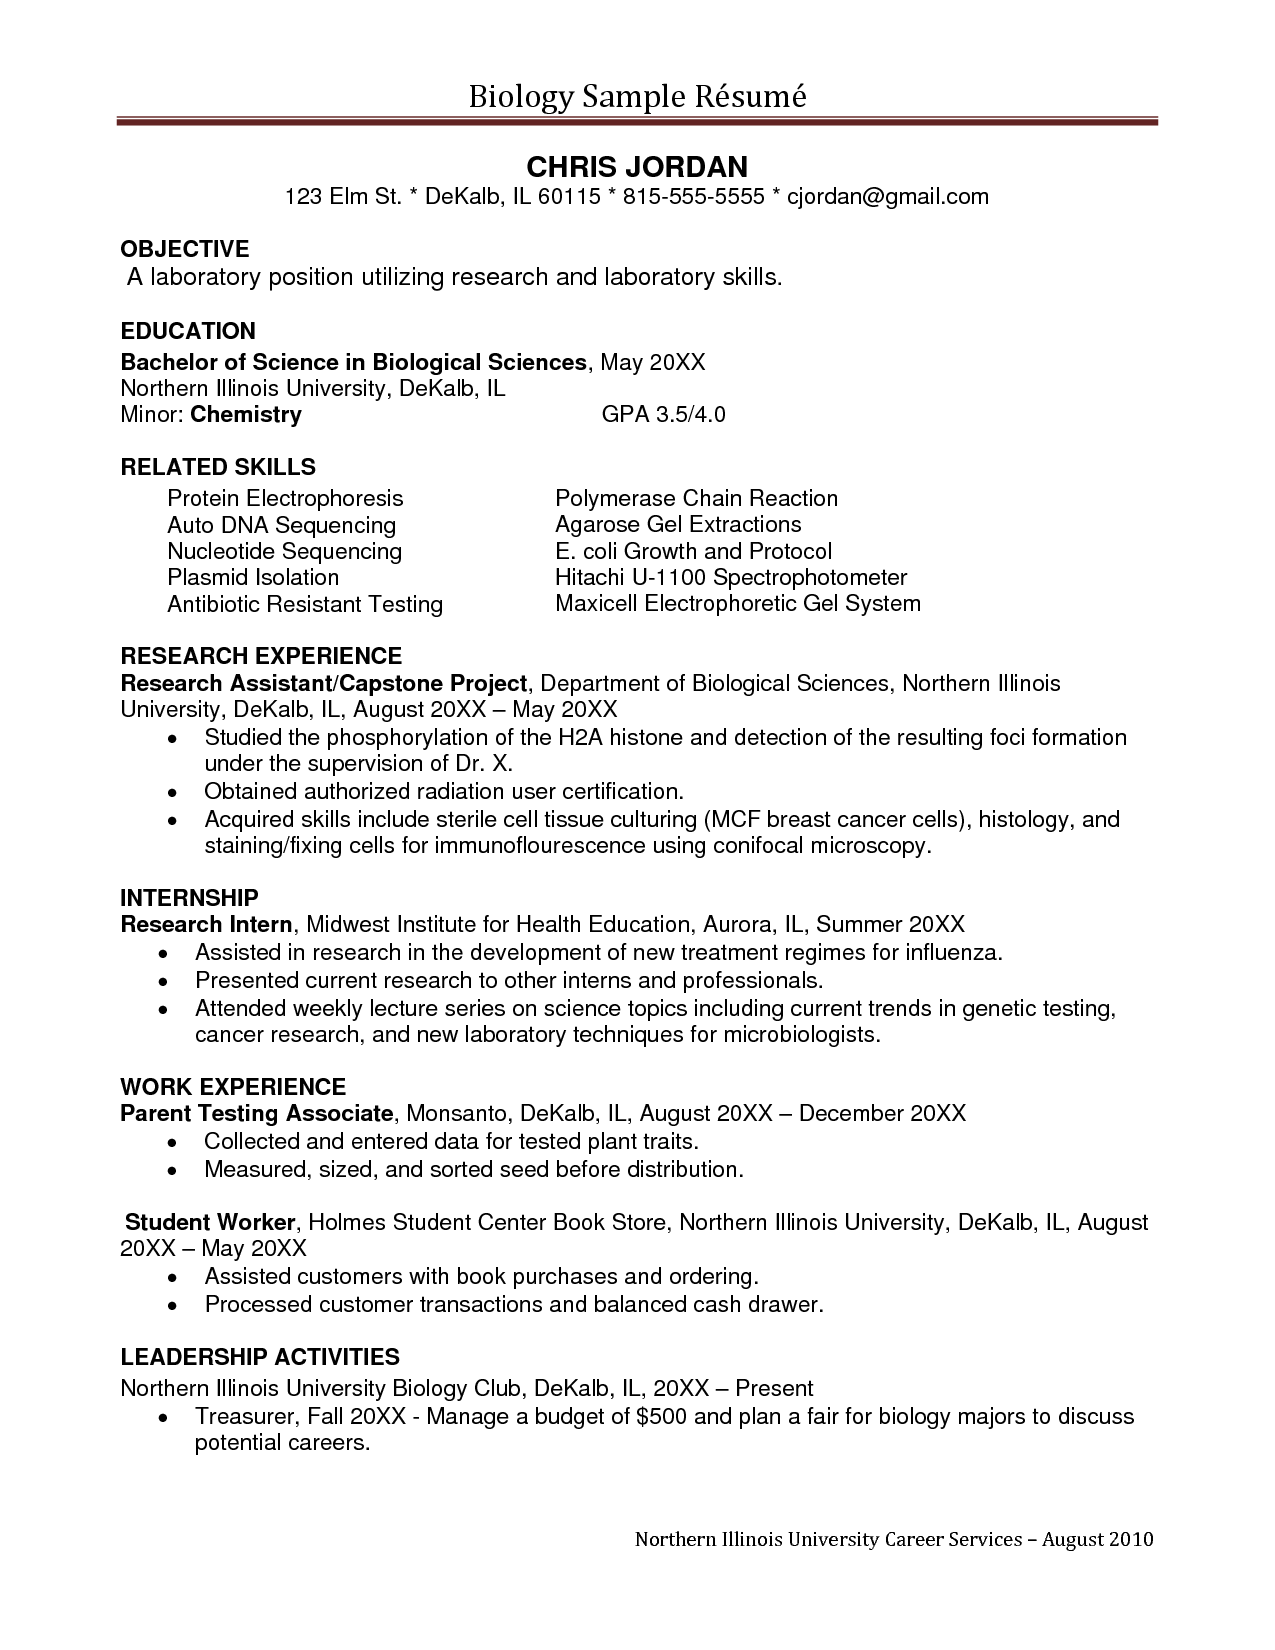 Undergraduate Student Resume Sample Sample Undergraduate Research Assistant Resume Sample ĺ